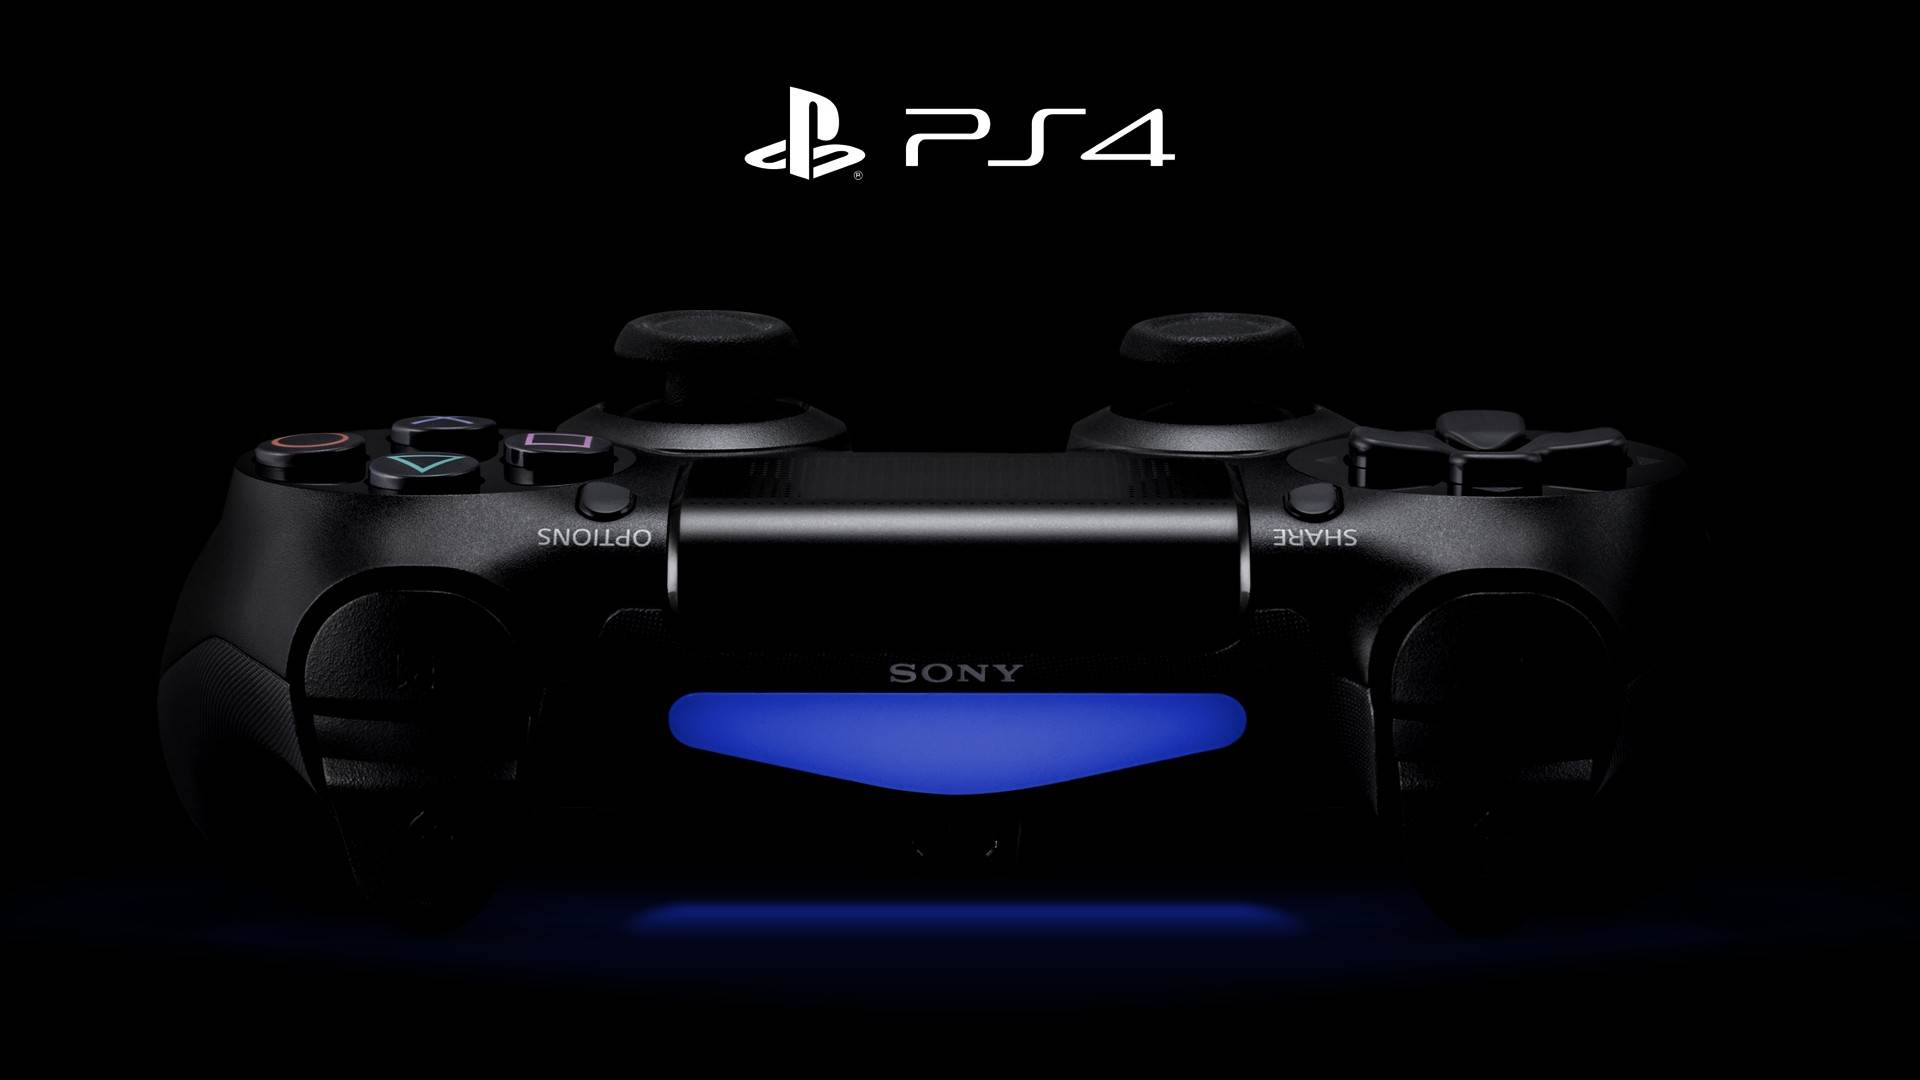 ps4 controller hd wallpapers. Latest from the Home Page